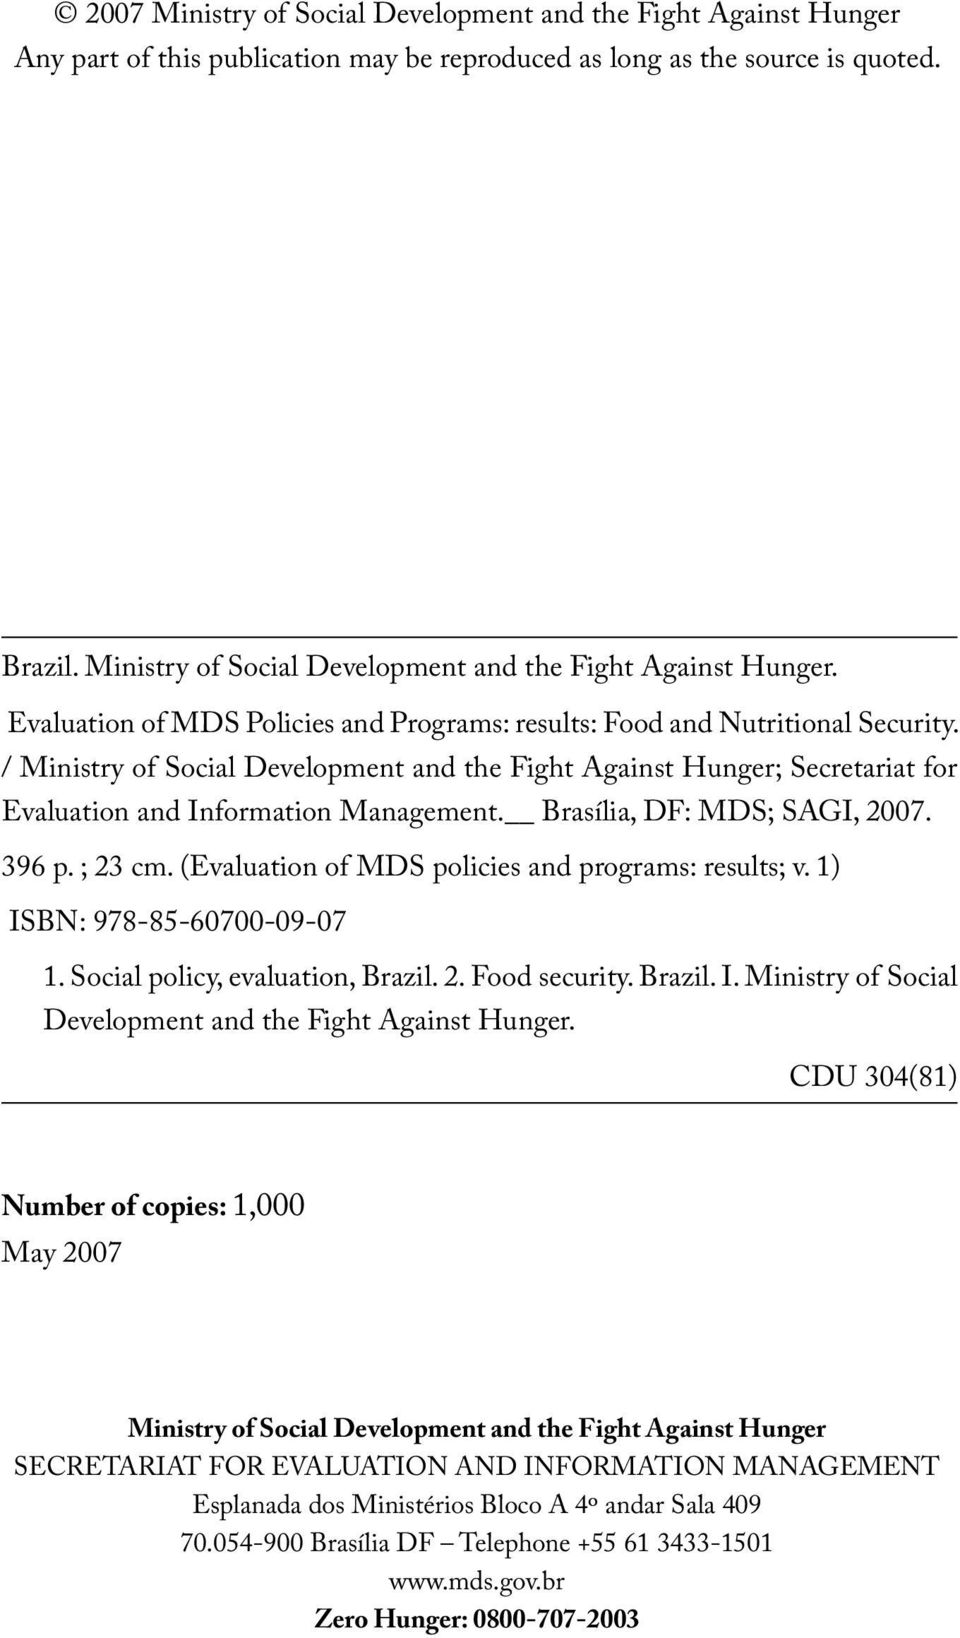 / Ministry of Social Development and the Fight Against Hunger; Secretariat for Evaluation and Information Management. Brasília, DF: MDS; SAGI, 2007. 396 p. ; 23 cm.